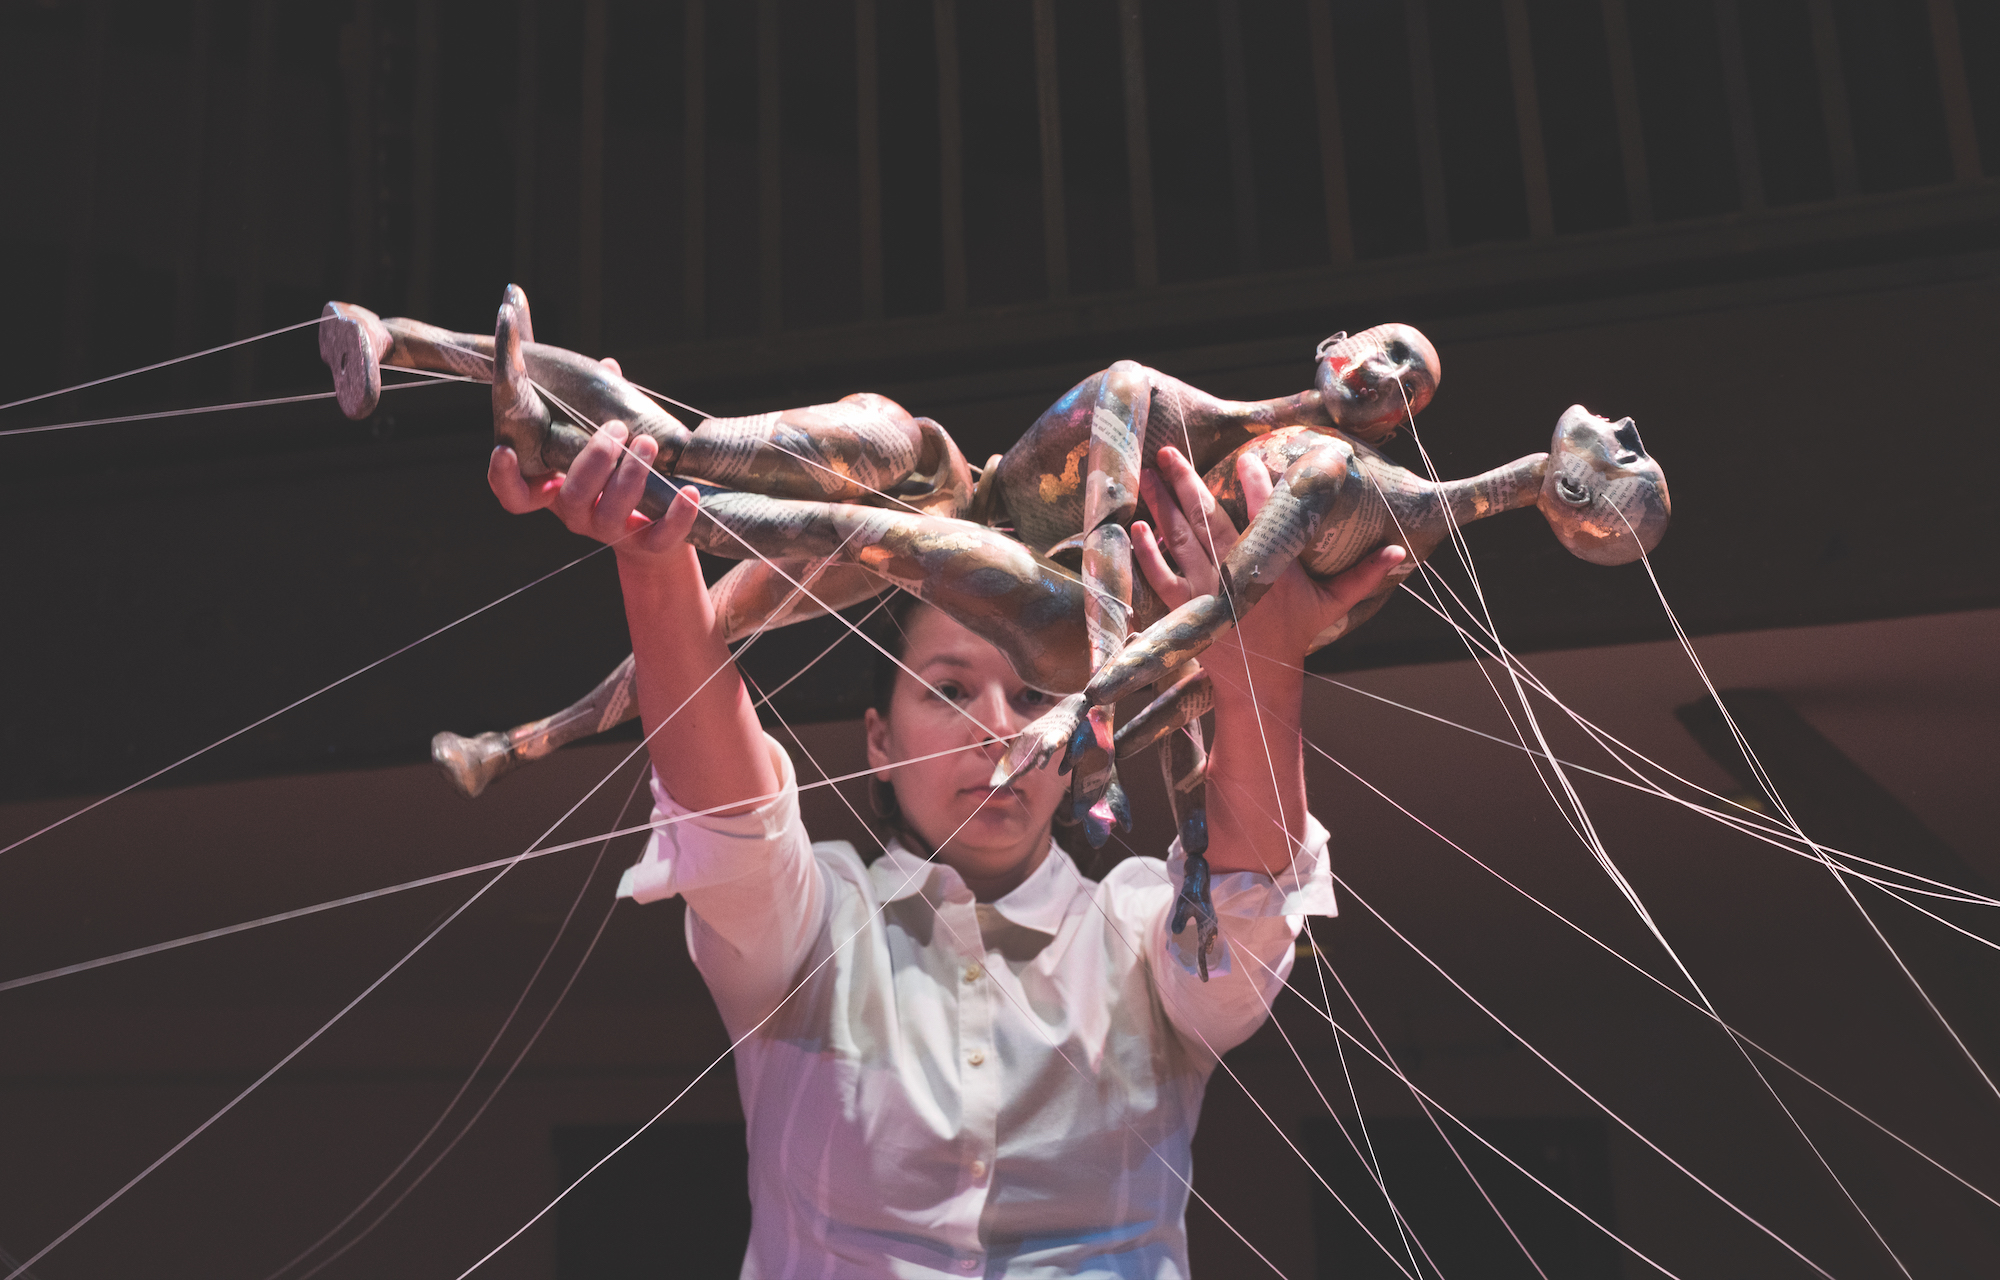 A puppeteer in a white shirt is holding two human figures. One is lying on top of the other. There are many white strings connected at various points on the figures and continuing out of the frame.